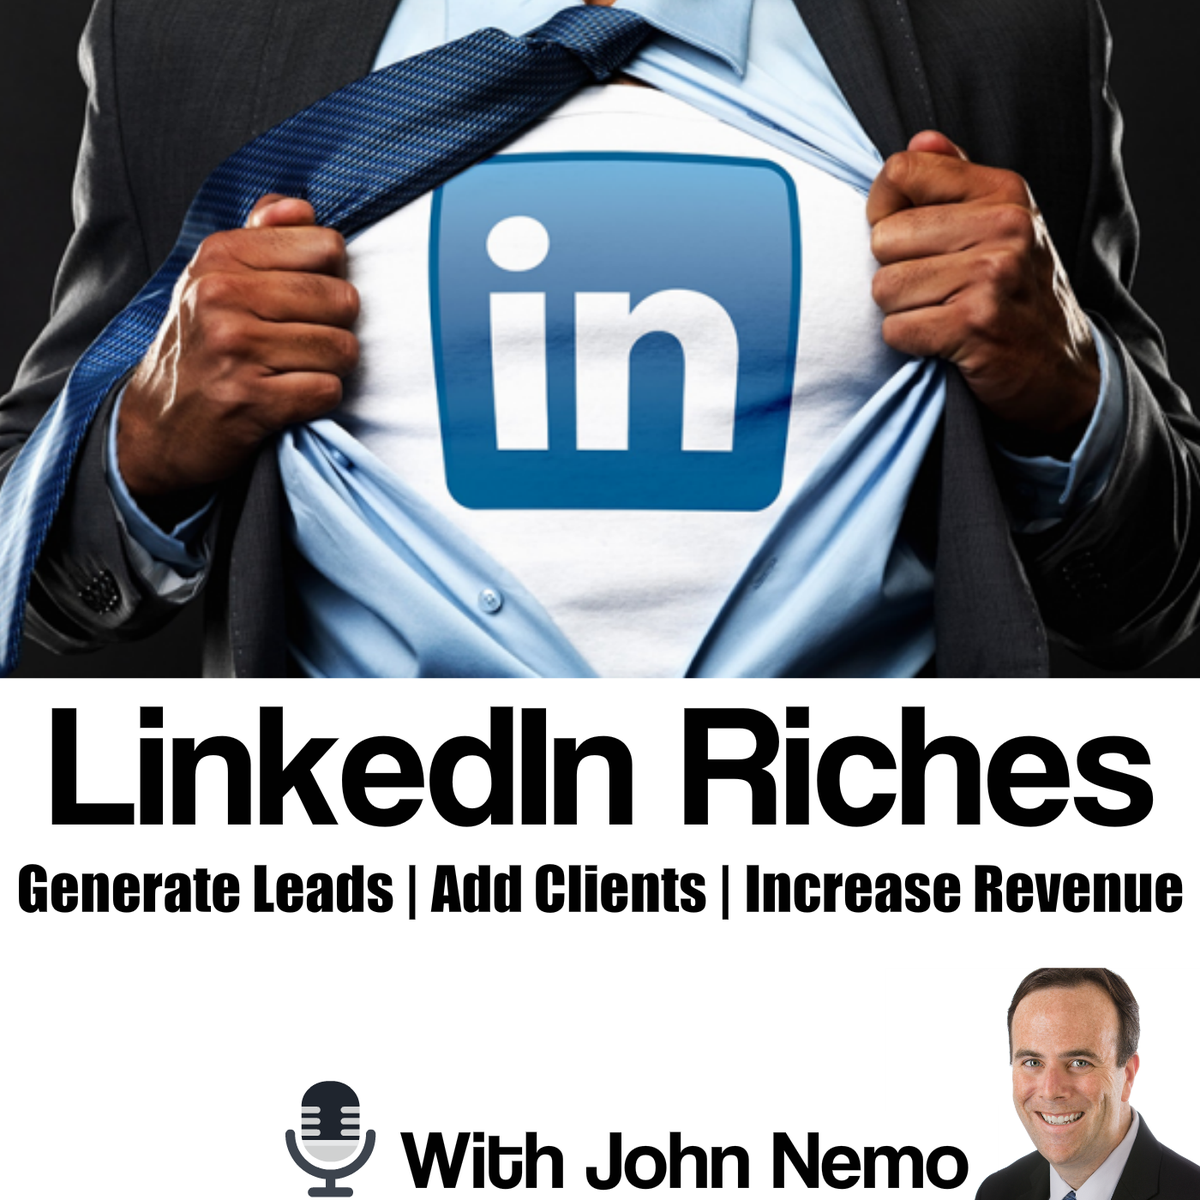 Discover the most effective ways 2 build #success on #LinkedIn using #LinkedInRiches #leadership #franchises #SDG  http:// bit.ly/2oR60Ne  &nbsp;  <br>http://pic.twitter.com/ebhyqpqZoZ